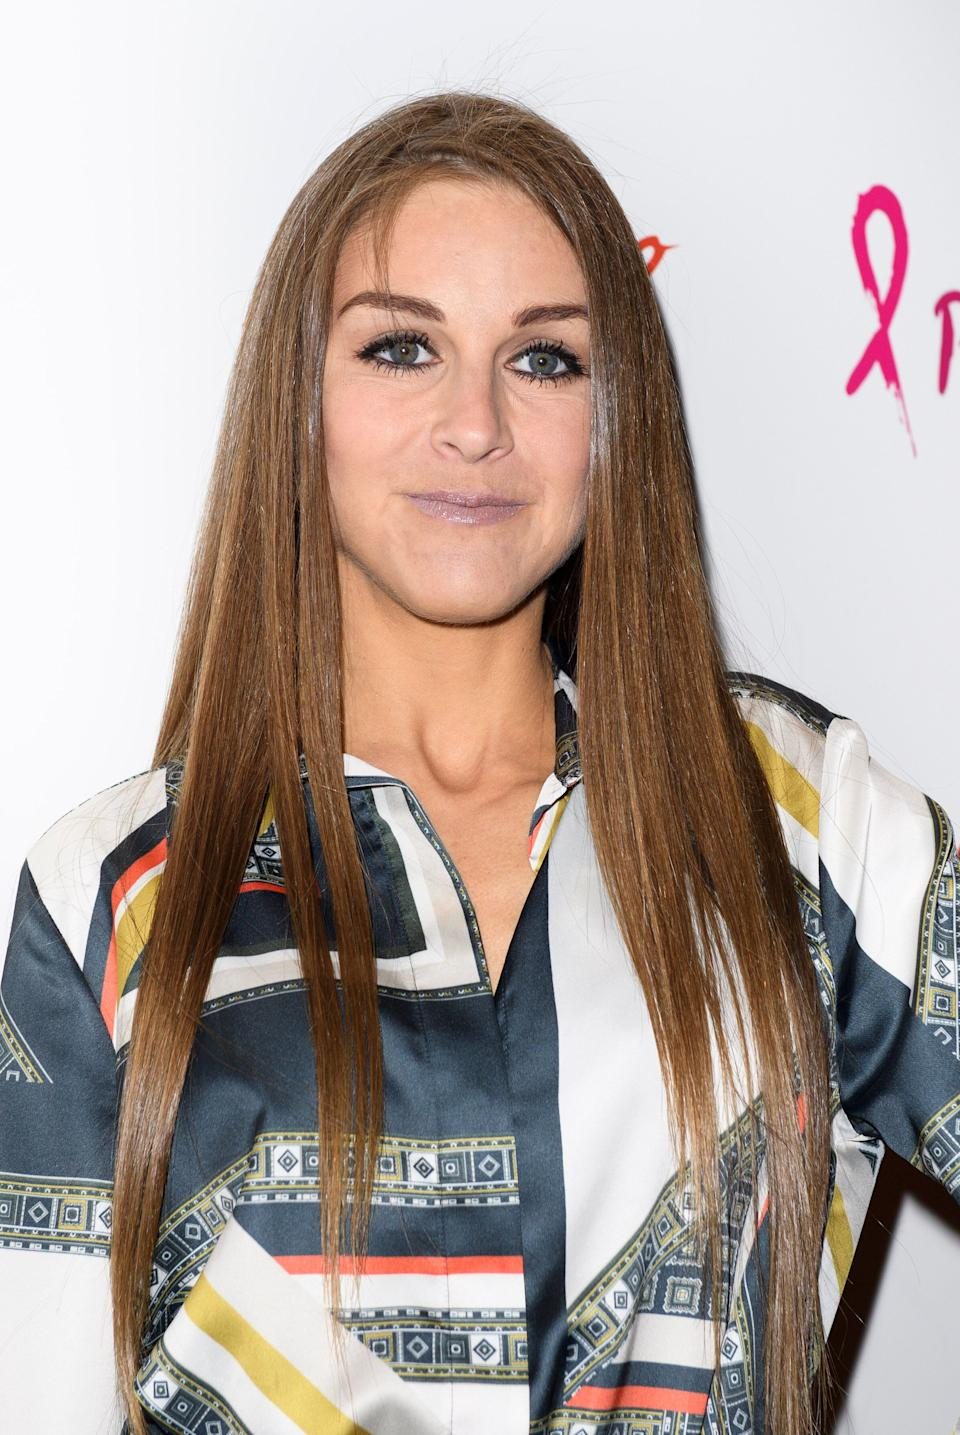 Nikki Grahame pictured in 2017 (Photo: Jonathan Hordle via Getty Images)